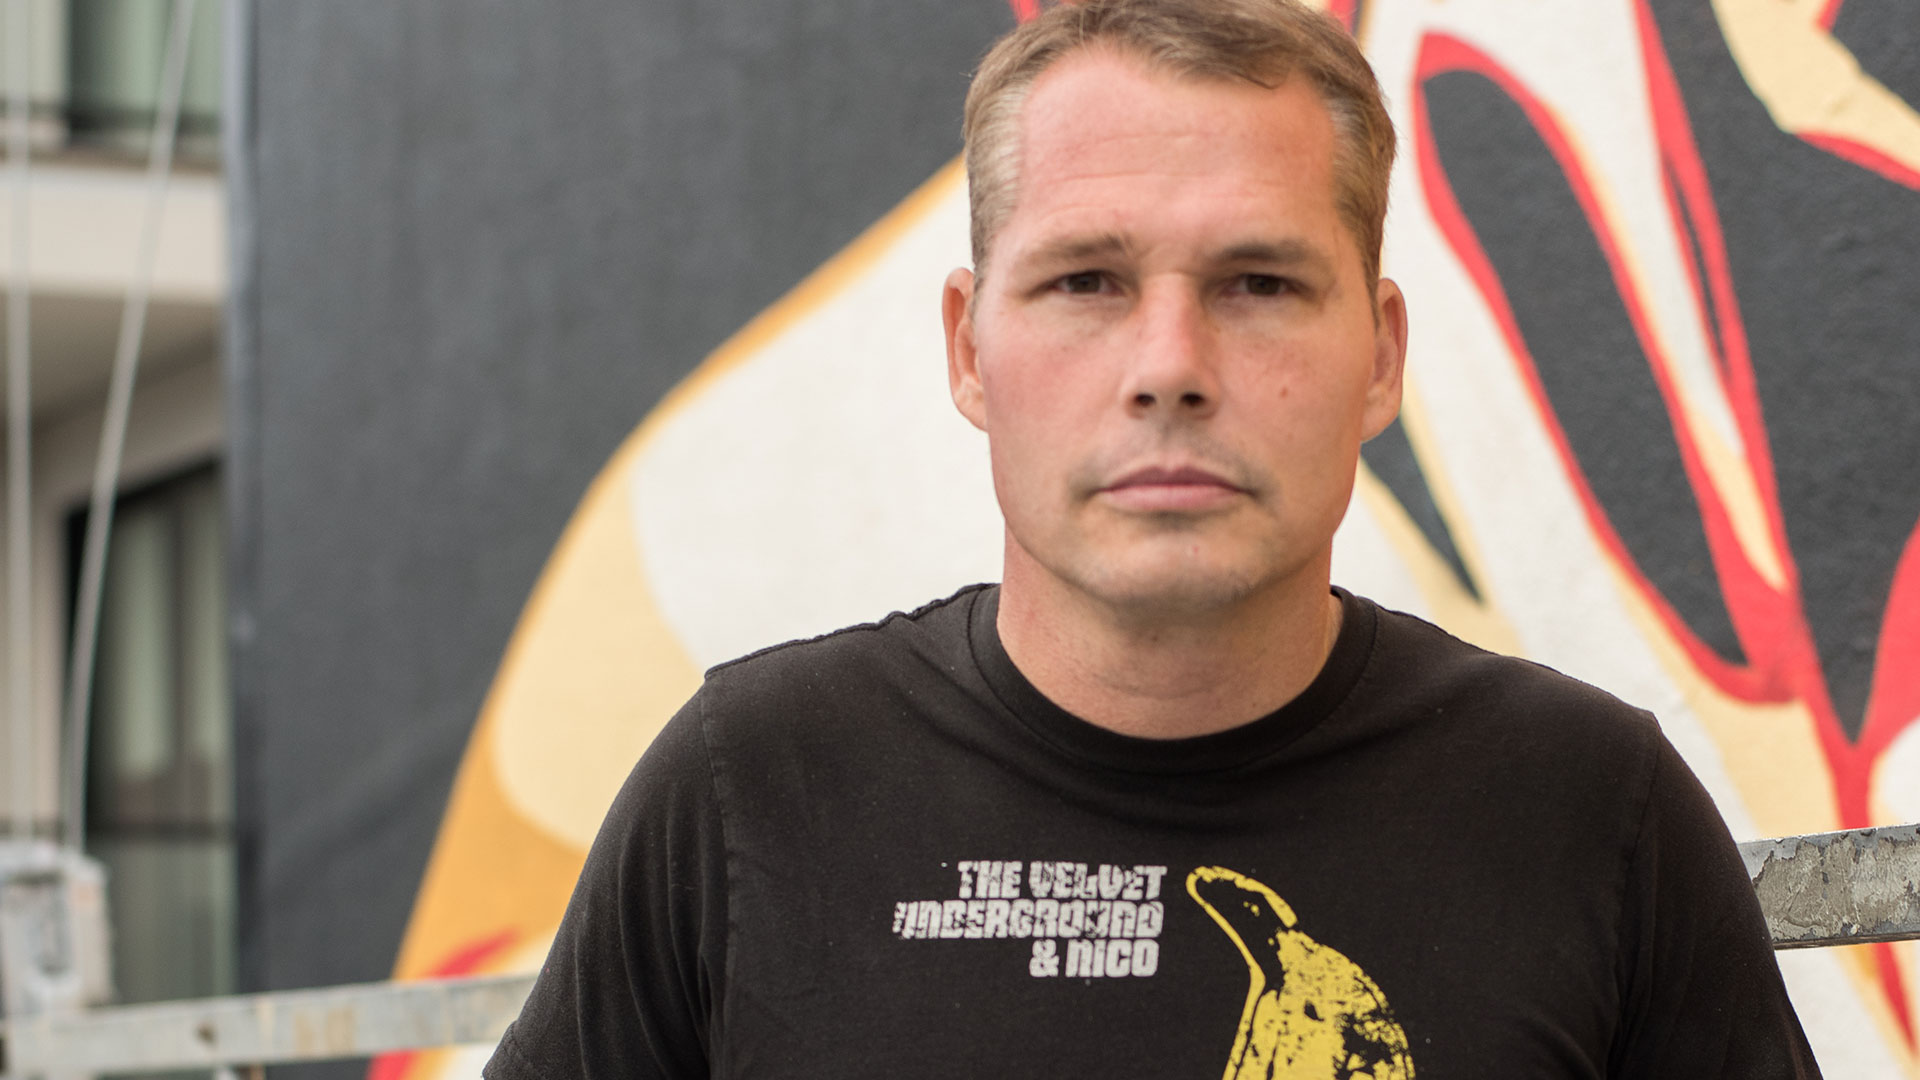 Shepard Fairey, well-known for his 'Hope' poster during the 2008 election, focuses now on specific social issues in a new San Francisco project.